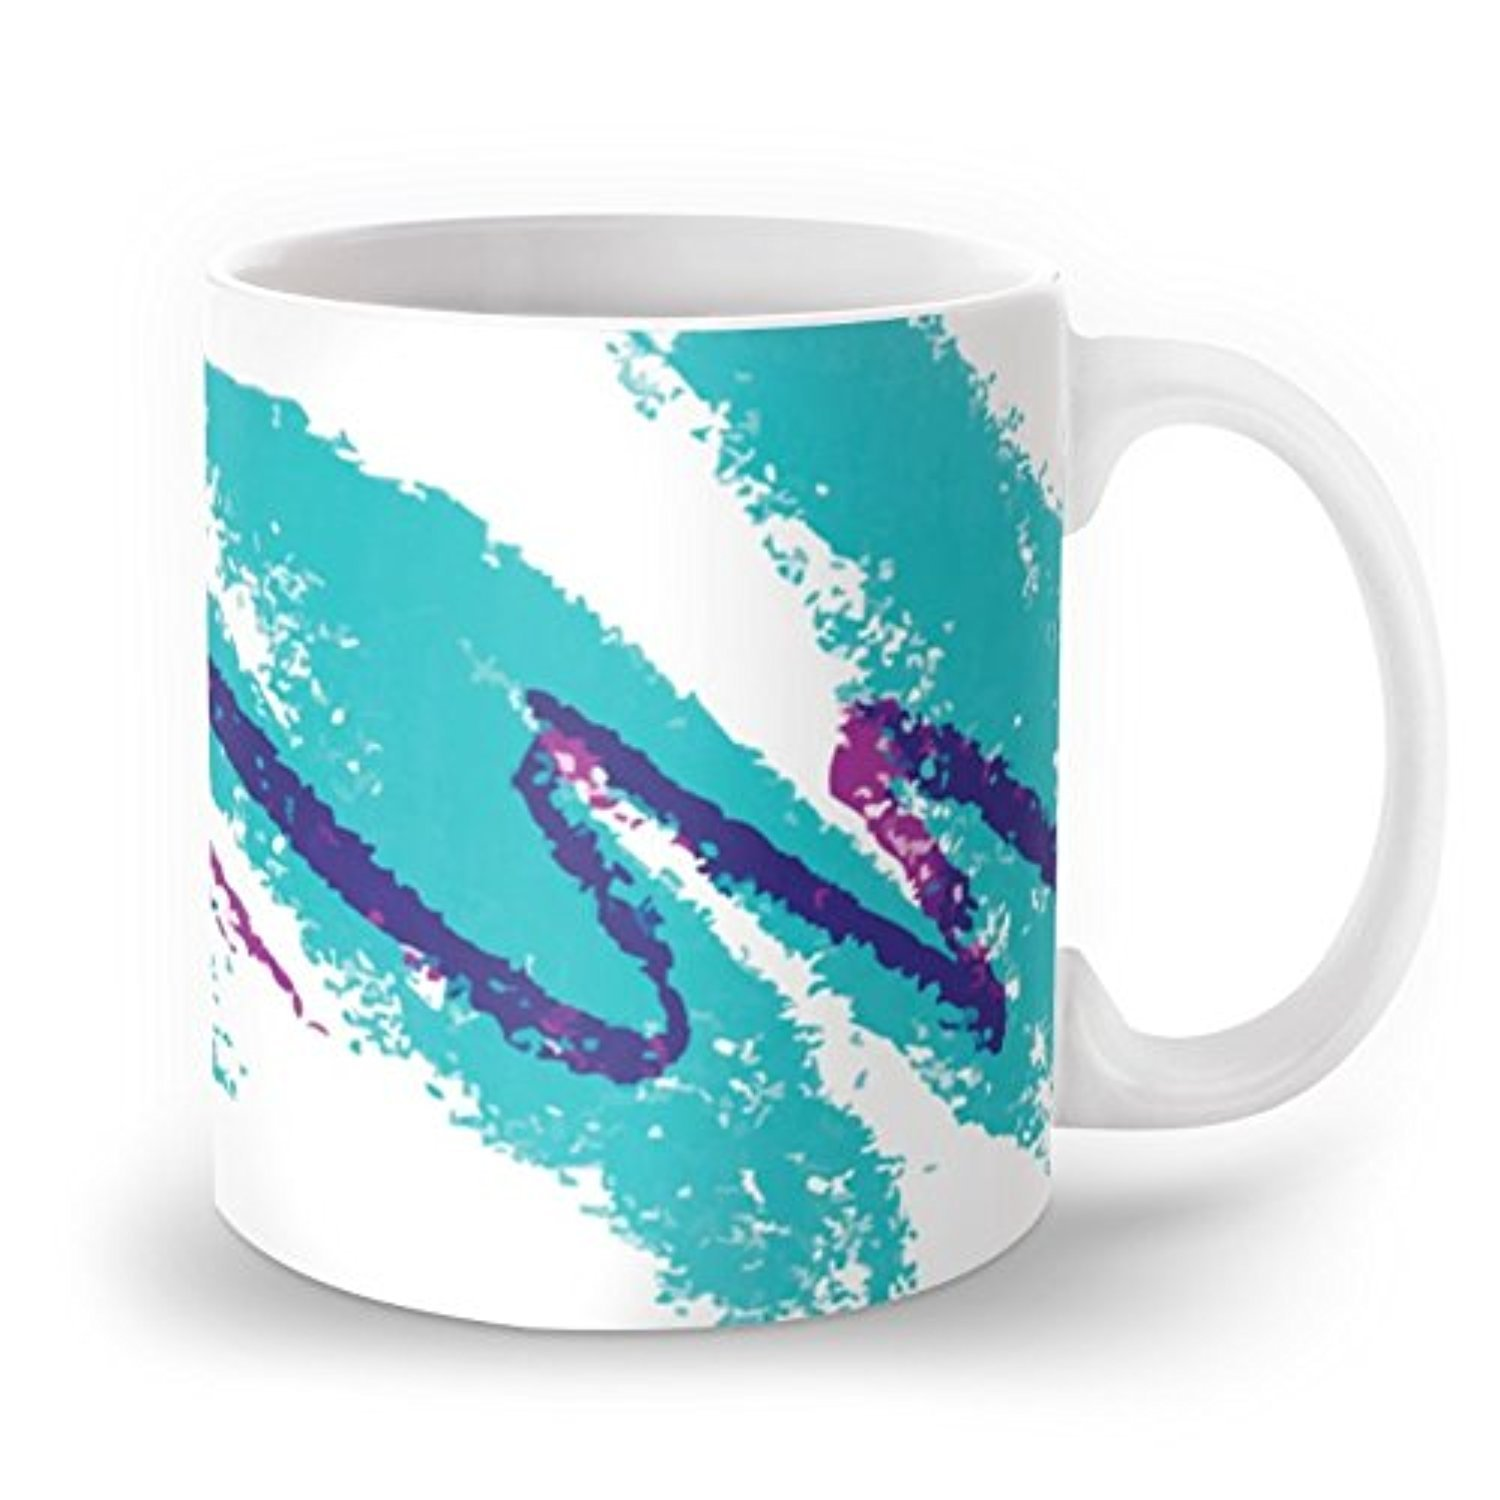 ◎送料込◎ Society6 Solo Jazz Mug 11 oz